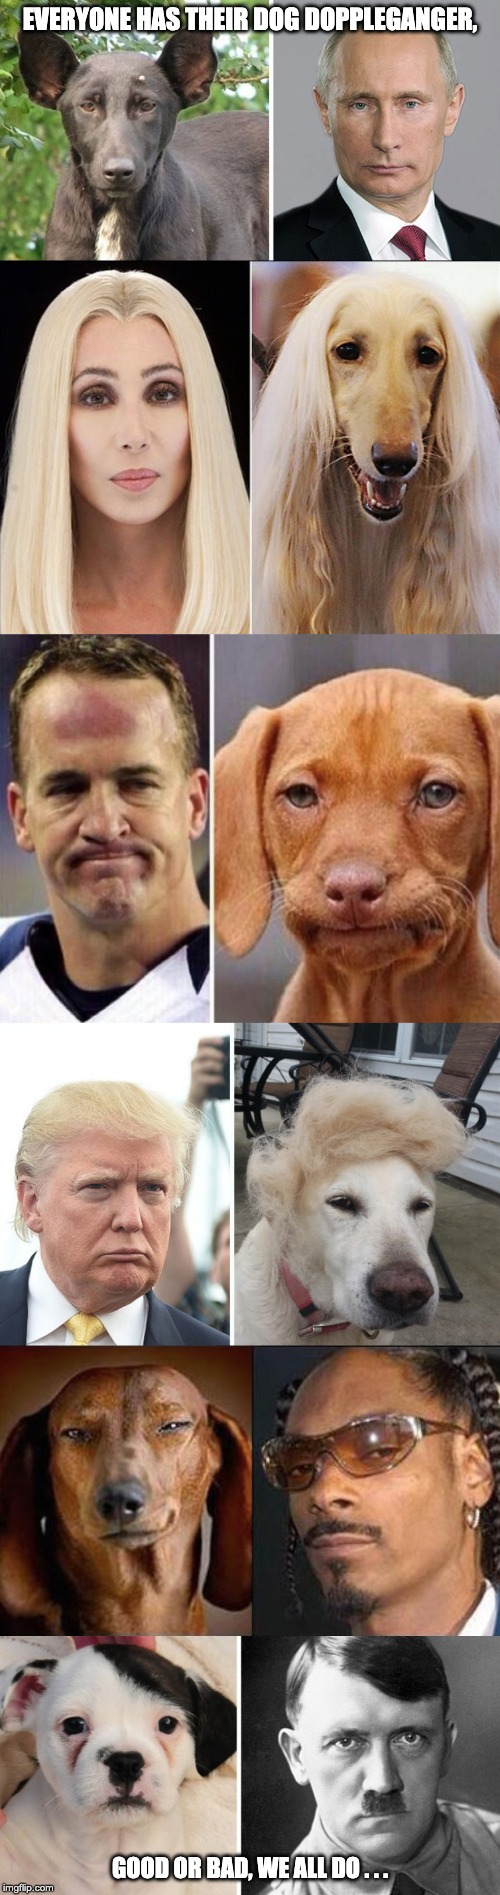 DOGpplegangers |  EVERYONE HAS THEIR DOG DOPPLEGANGER, GOOD OR BAD, WE ALL DO . . . | image tagged in dogs,snoop dogg,vladimir putin,donald trump,disappointed dog,adolf | made w/ Imgflip meme maker